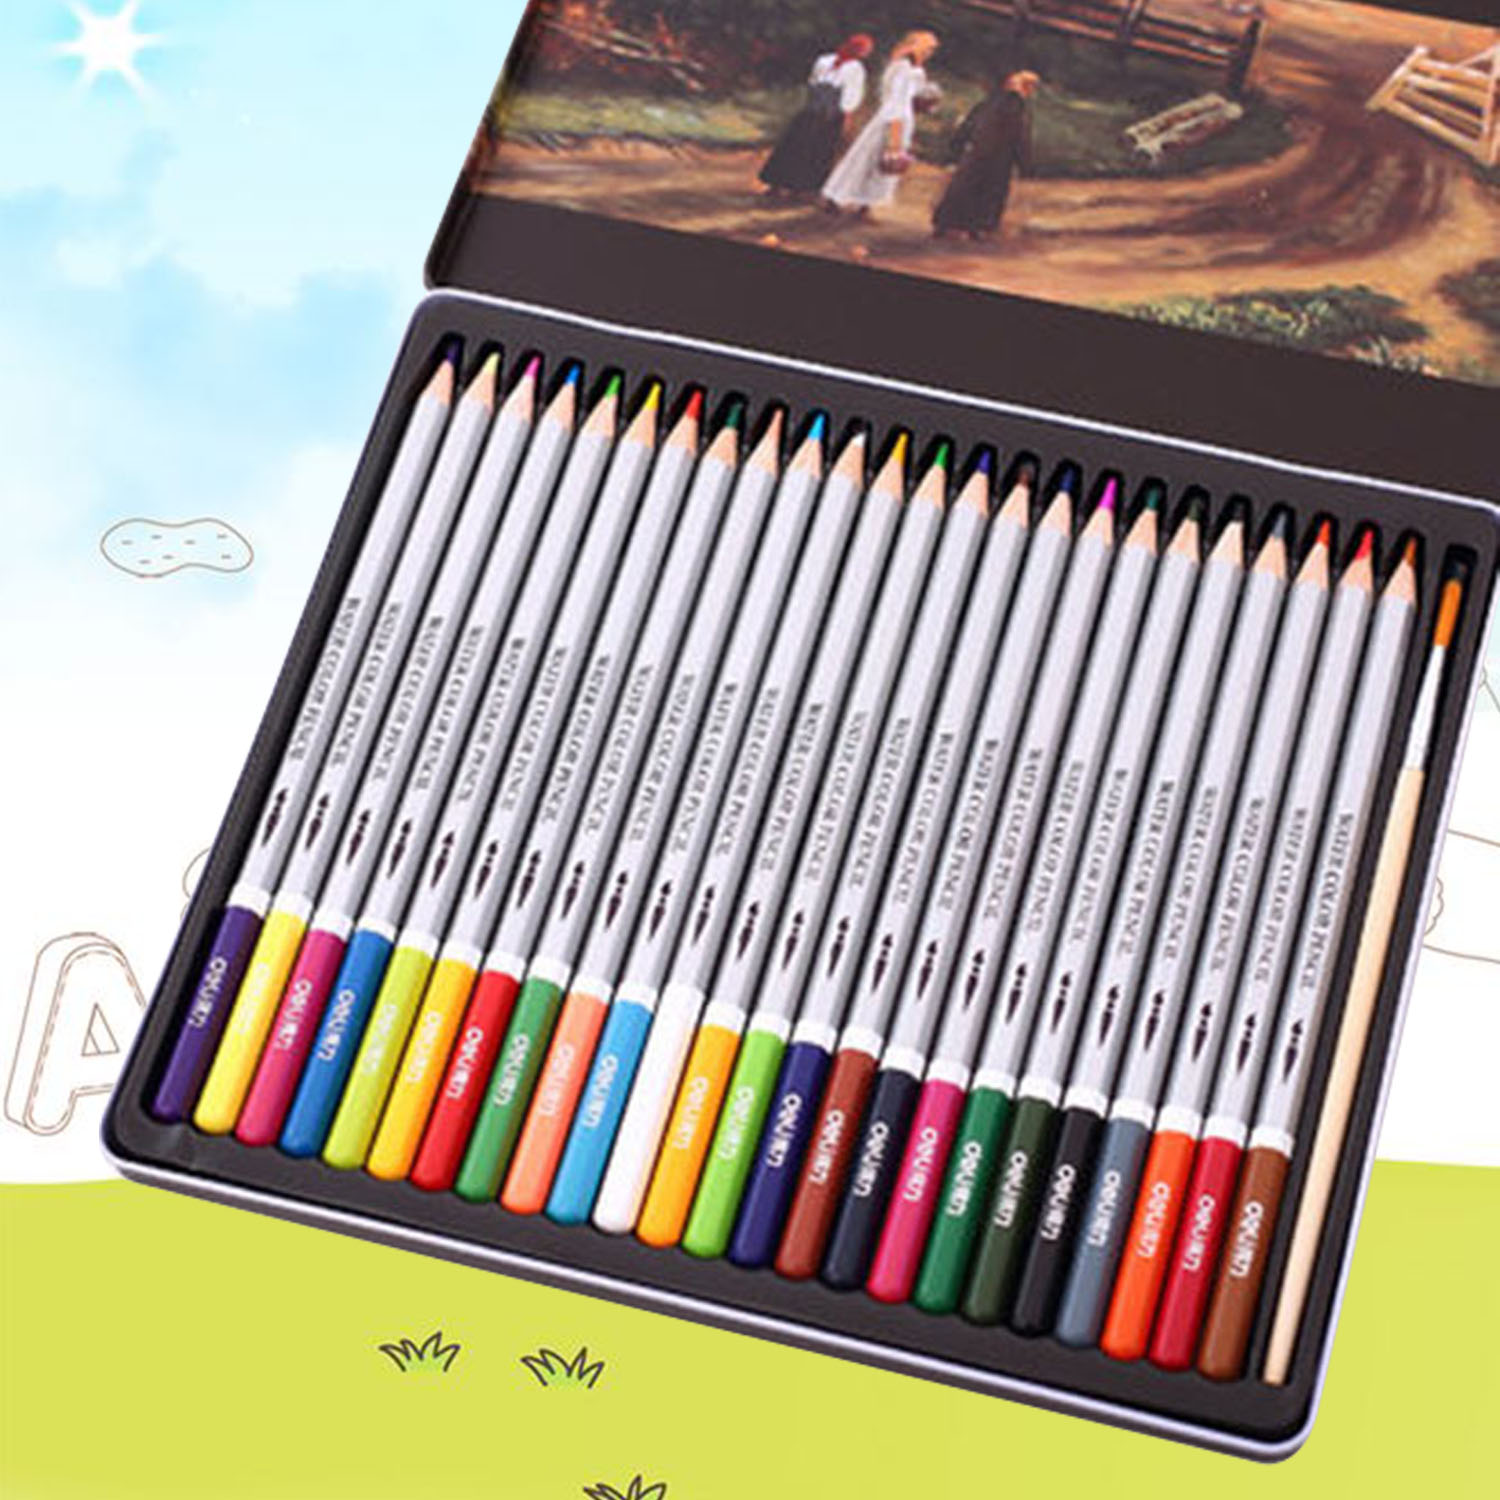 24 Colors Water Soluble Colored Pencil Watercolor Pencils Set For Adults Kids Drawing Painting Sketching